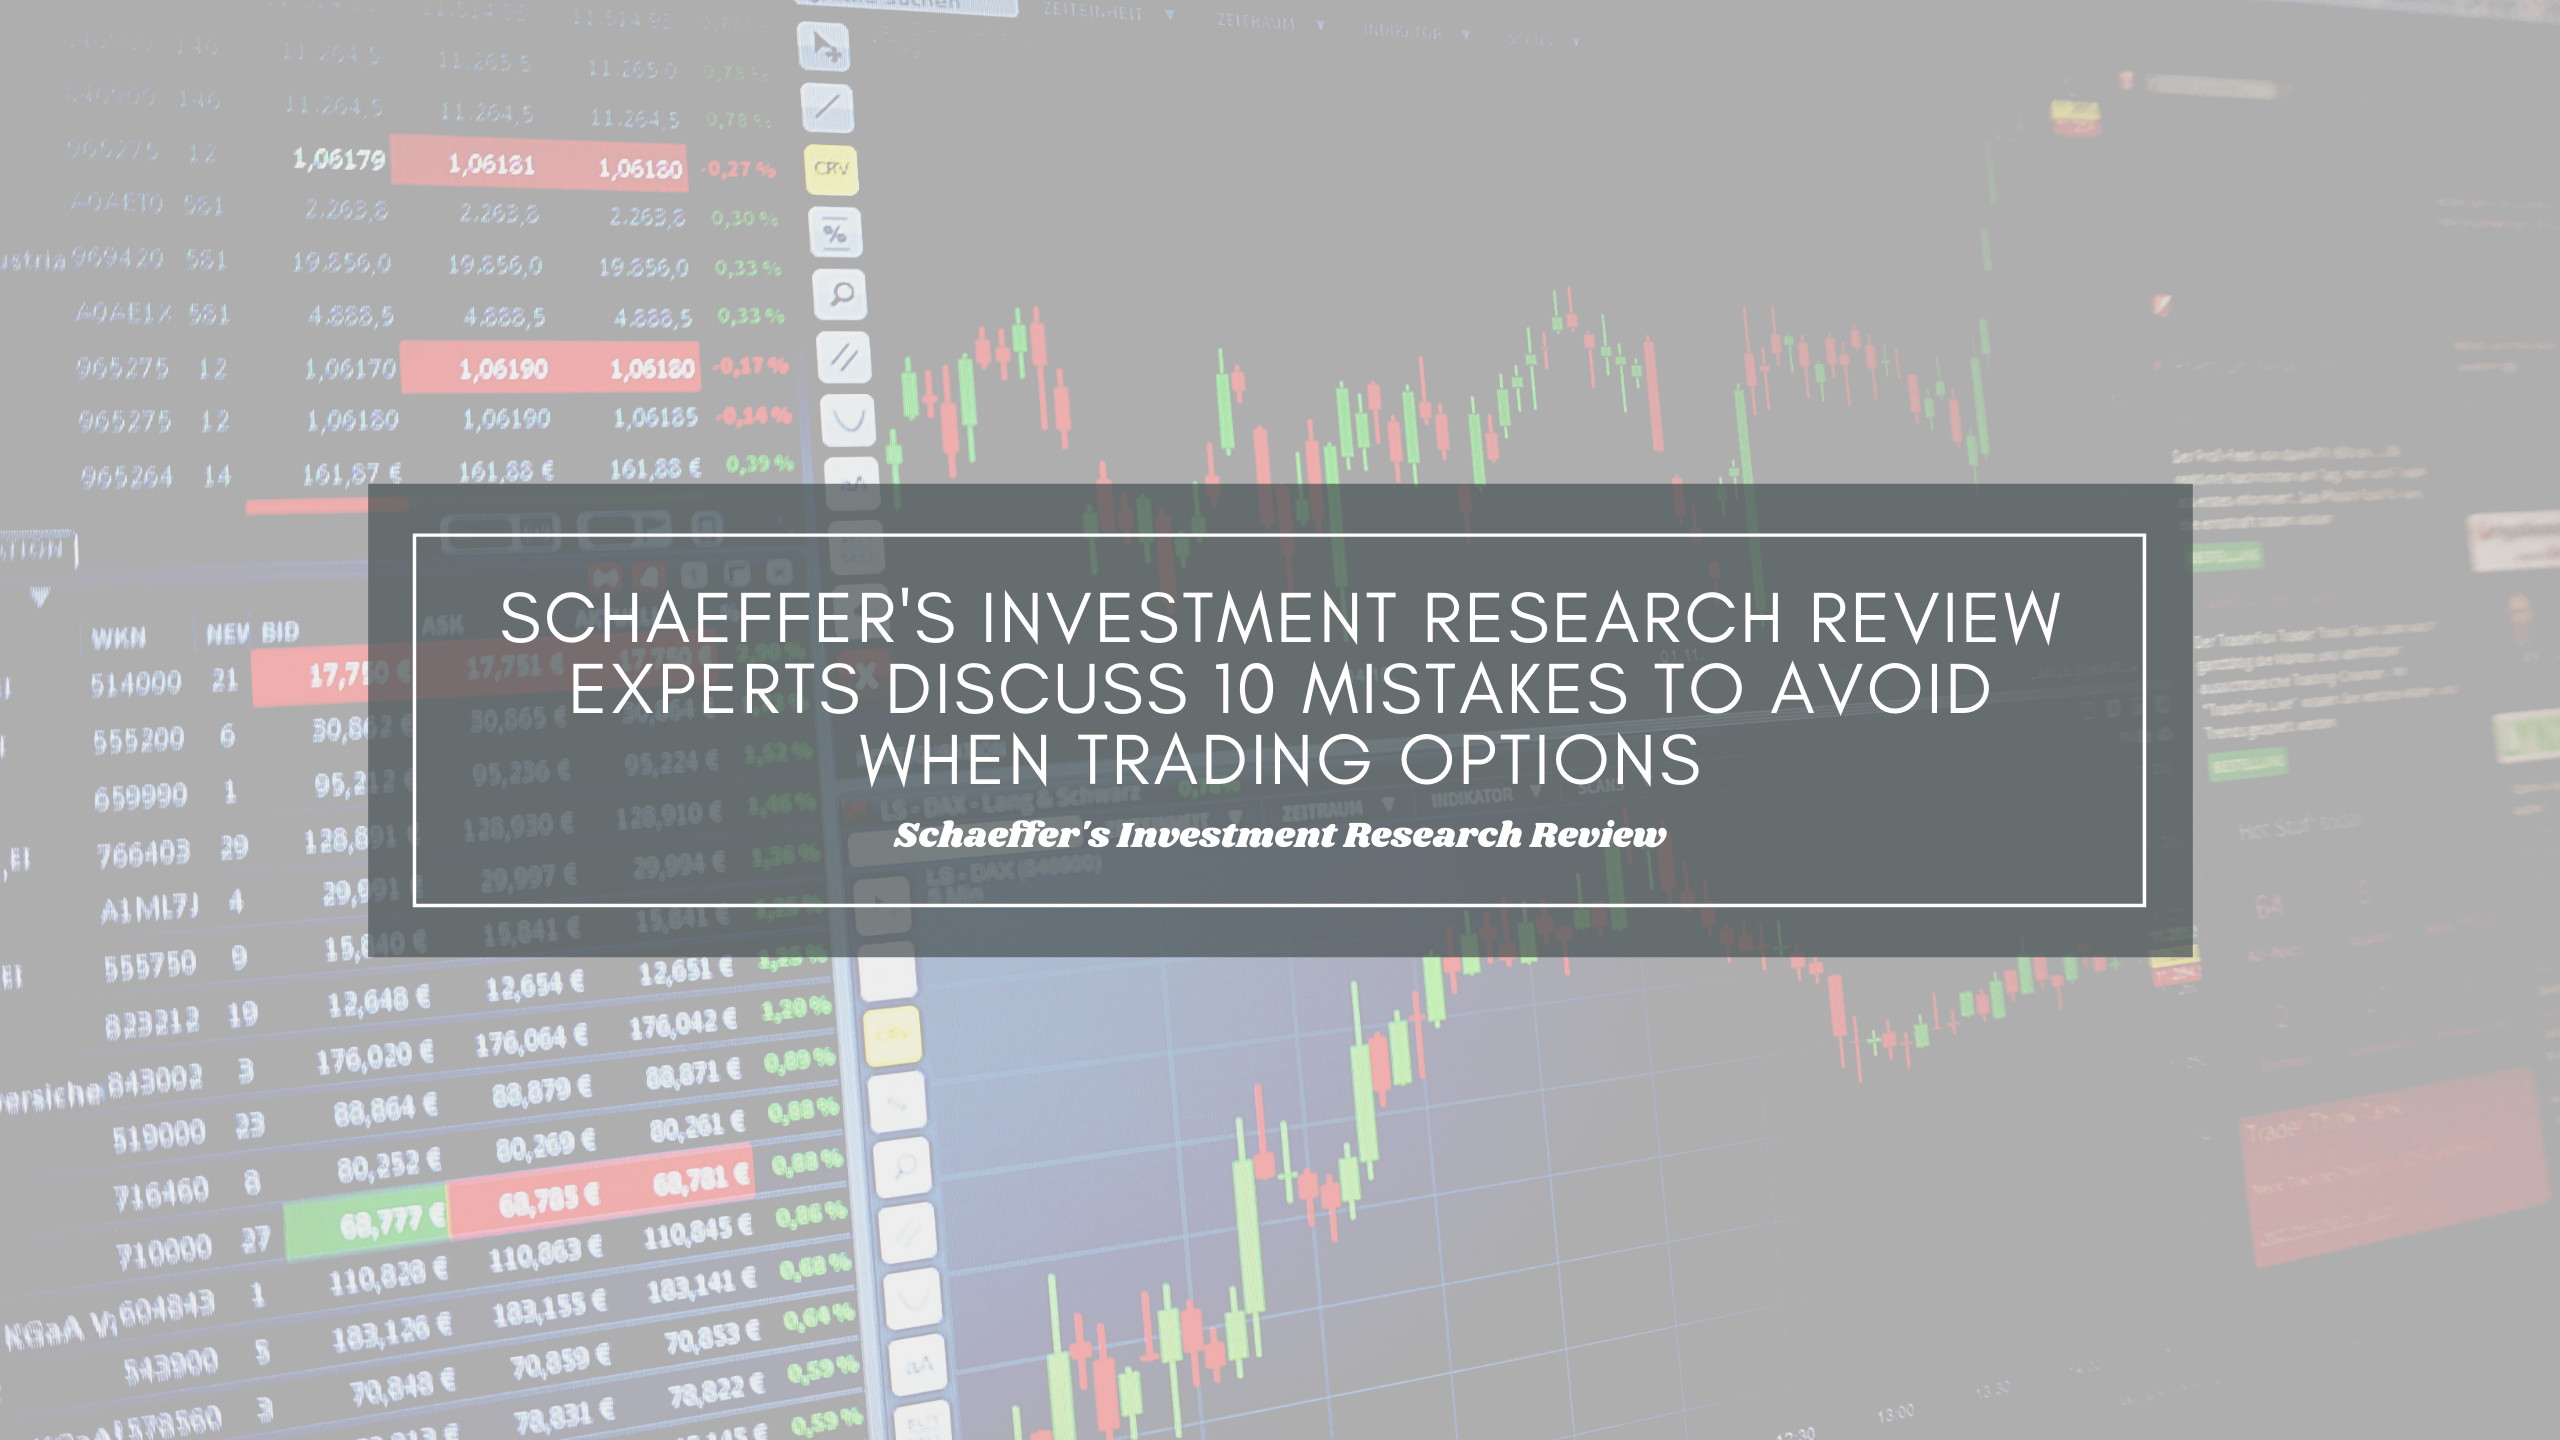 Schaeffer's Investment Research Review Experts Discuss 10 Mistakes to Avoid When Trading Options